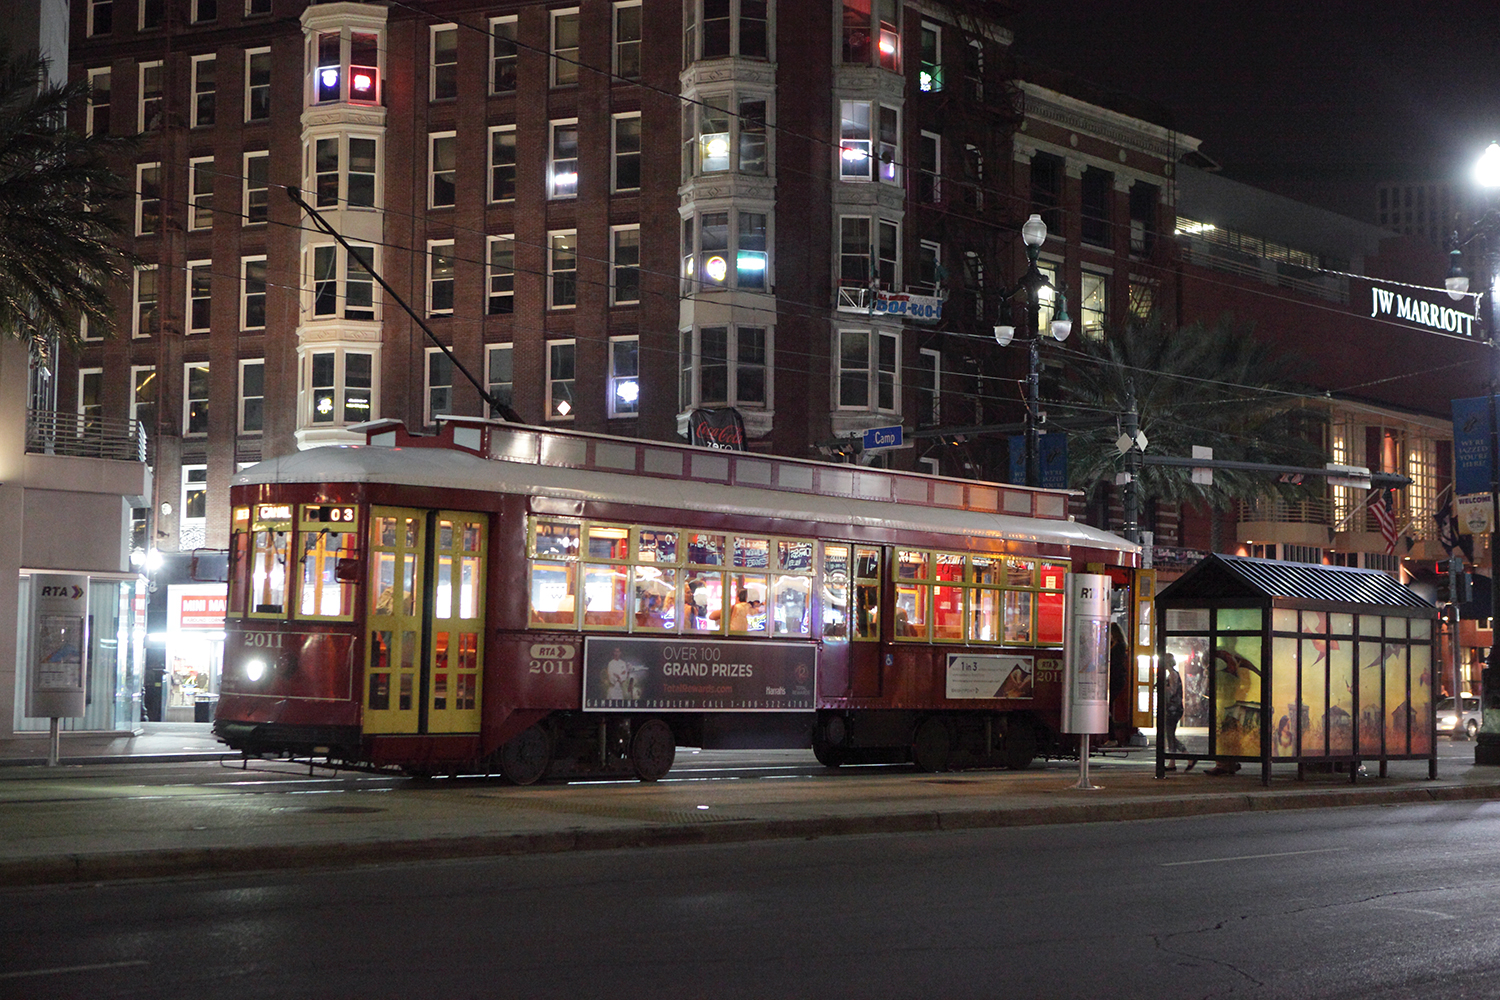 U.S.A. / New Orleans / The red tramcar